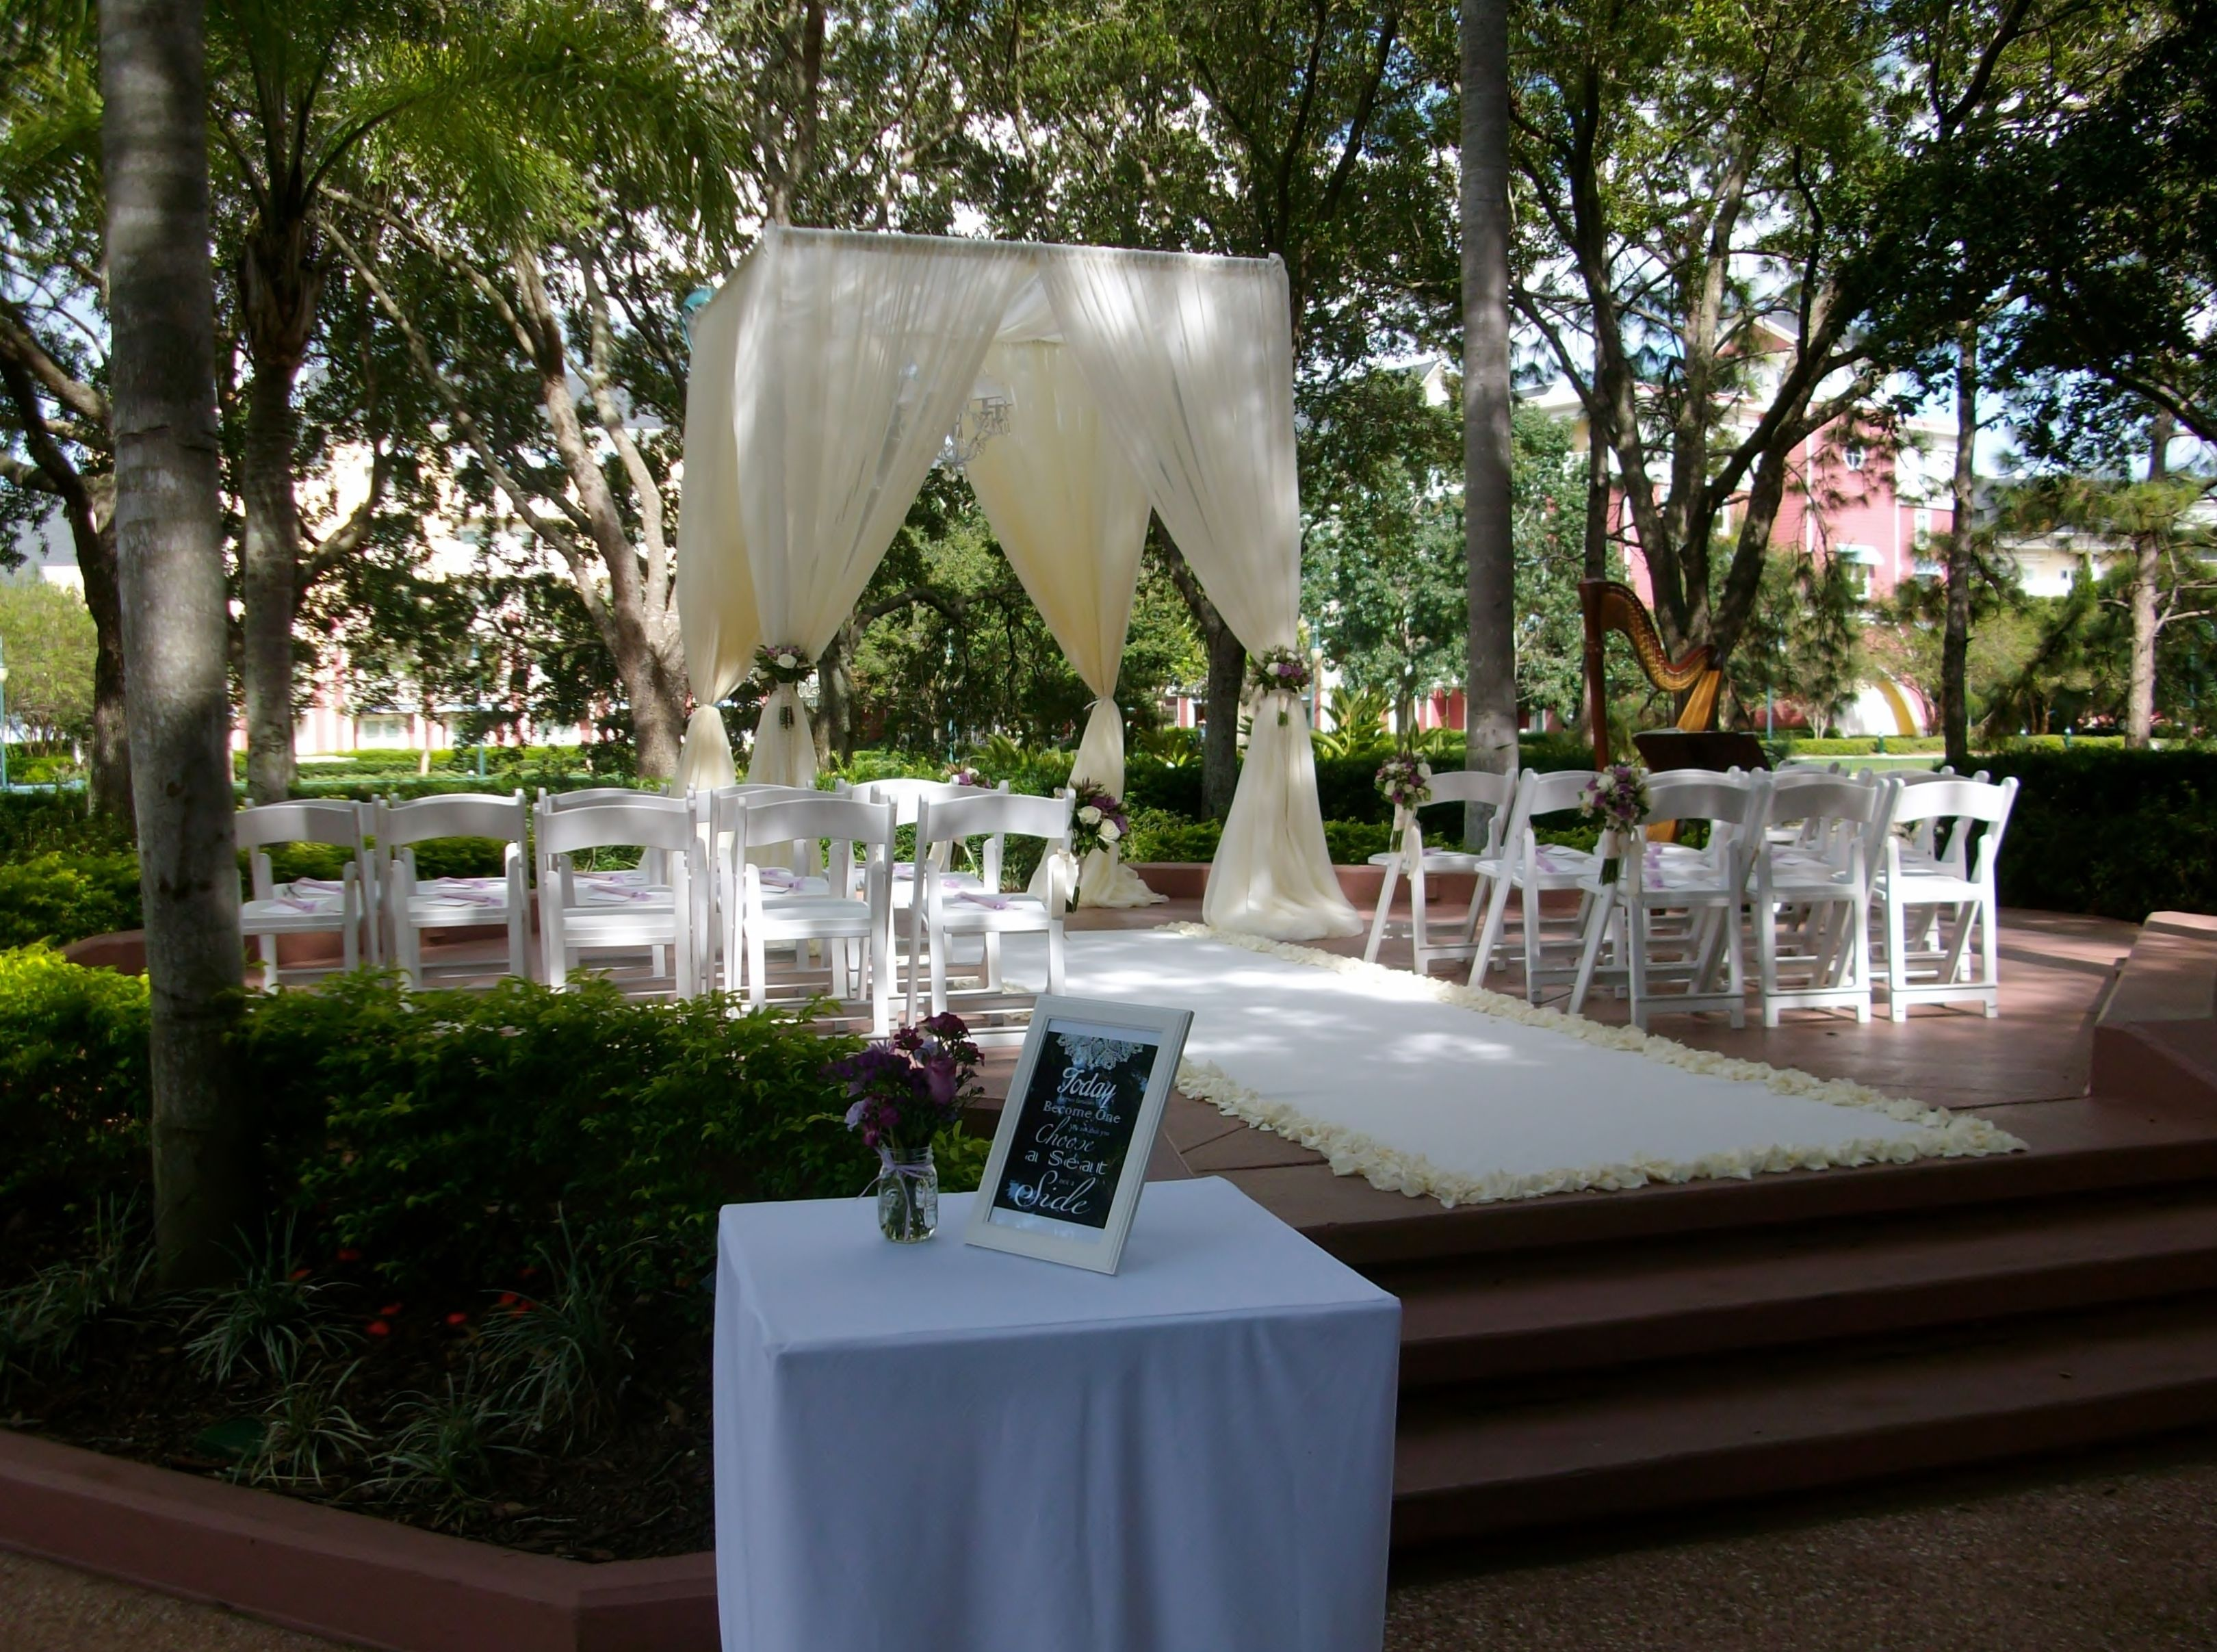 Disney Wedding Ceremony At The Swan And Dolphin Crescent Terrace Location This Is A Gorgeous Venue In Orlando Fl